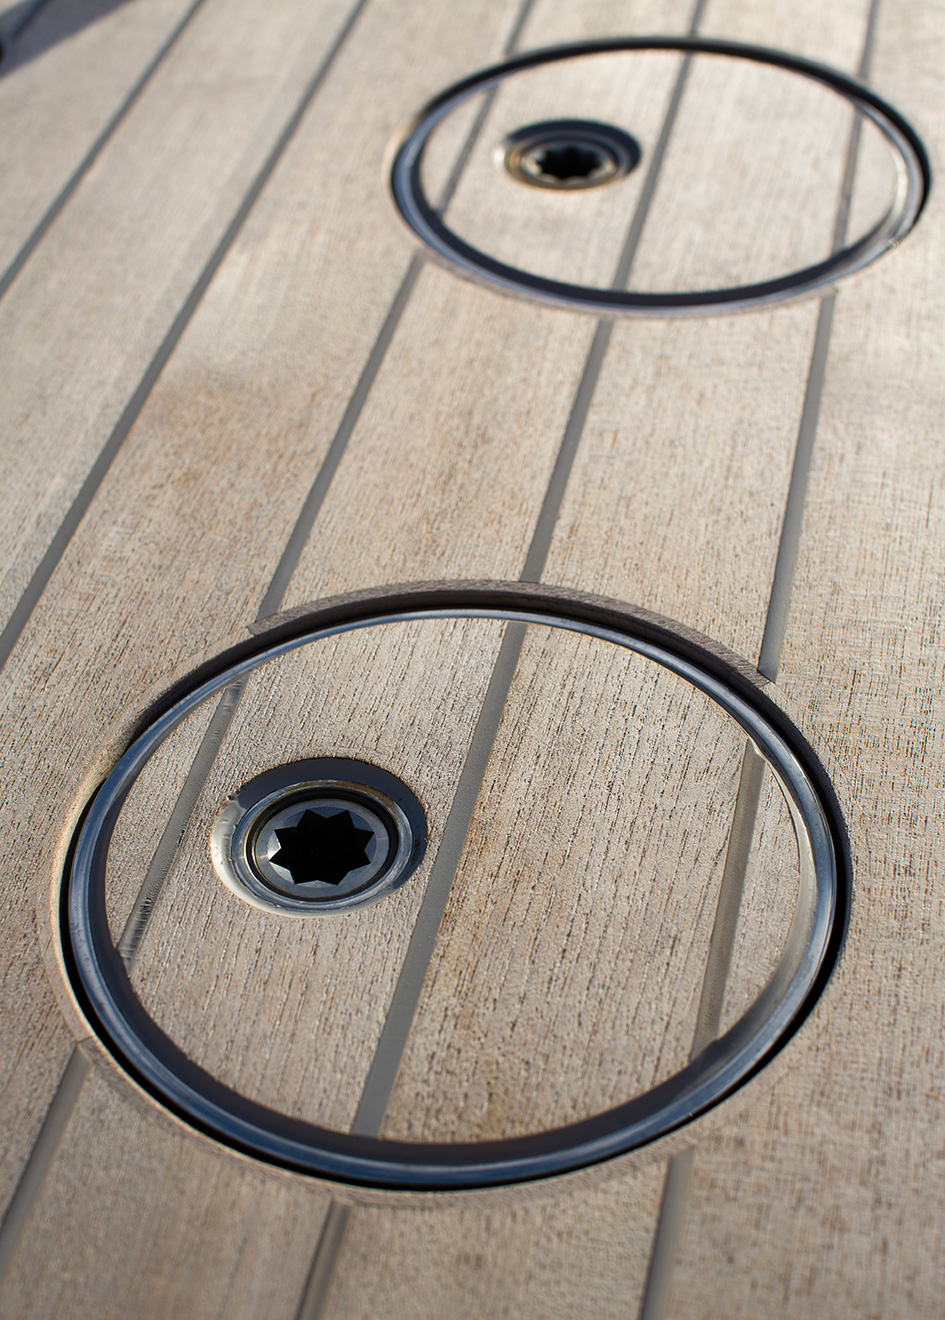 deck-detail-on-vitters-sailing-super-yacht-Unfurled